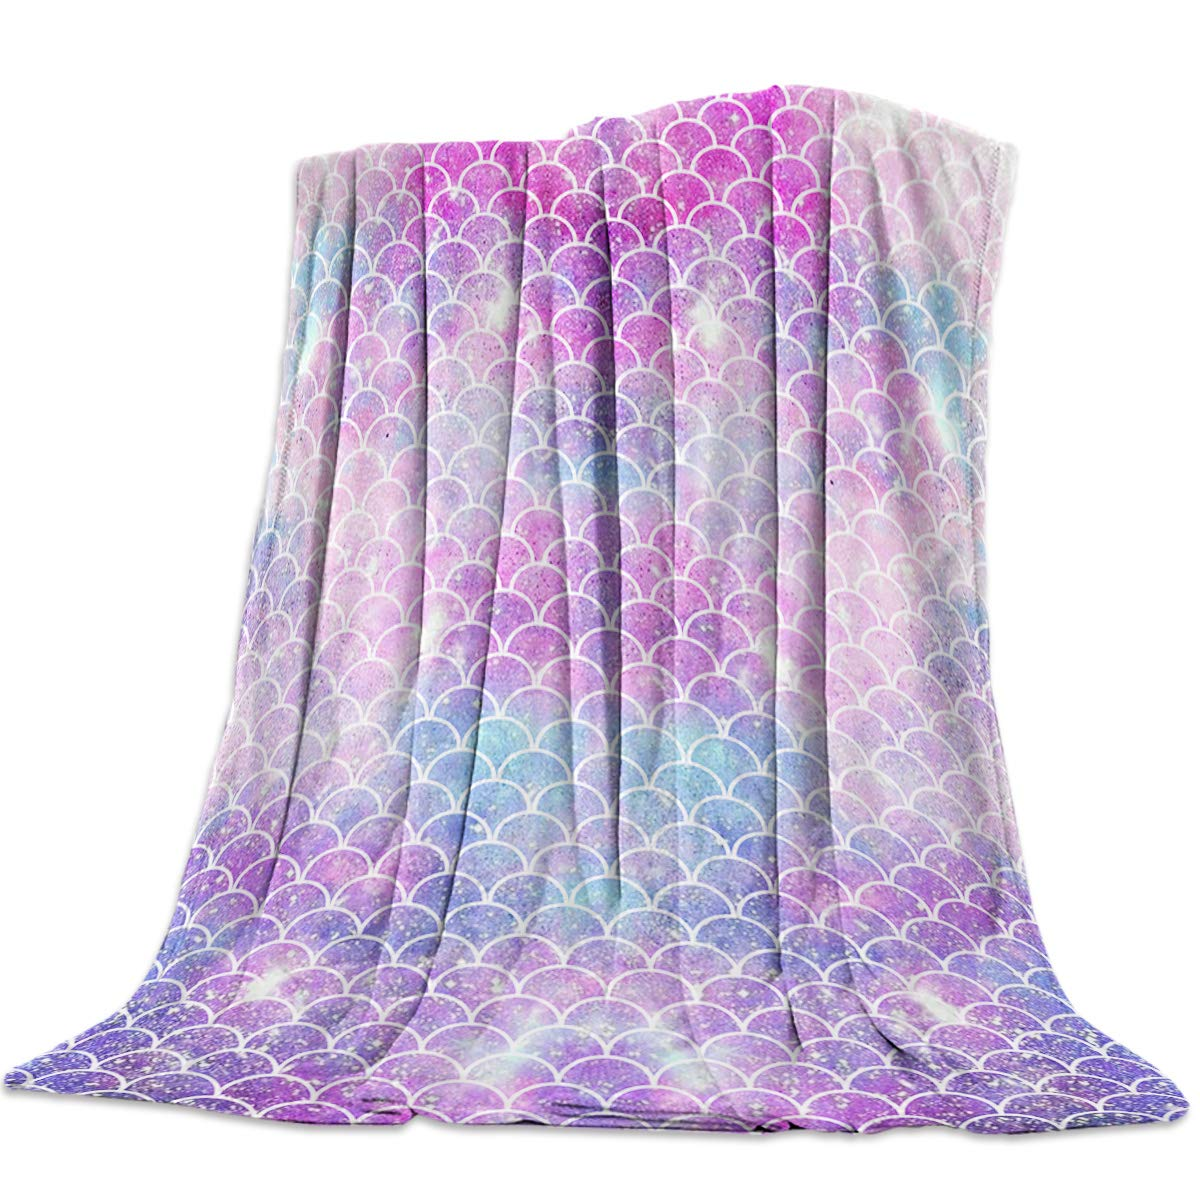 T&H Home Artistic Blanket, Ombre Beauty Mermaid Fish Scale Soft Flannel Fleece Bedding Blanket for Couch, Throw Blanket for Cover Men Women Aults Kids Girls Boys 60''x80'' by T&H Home